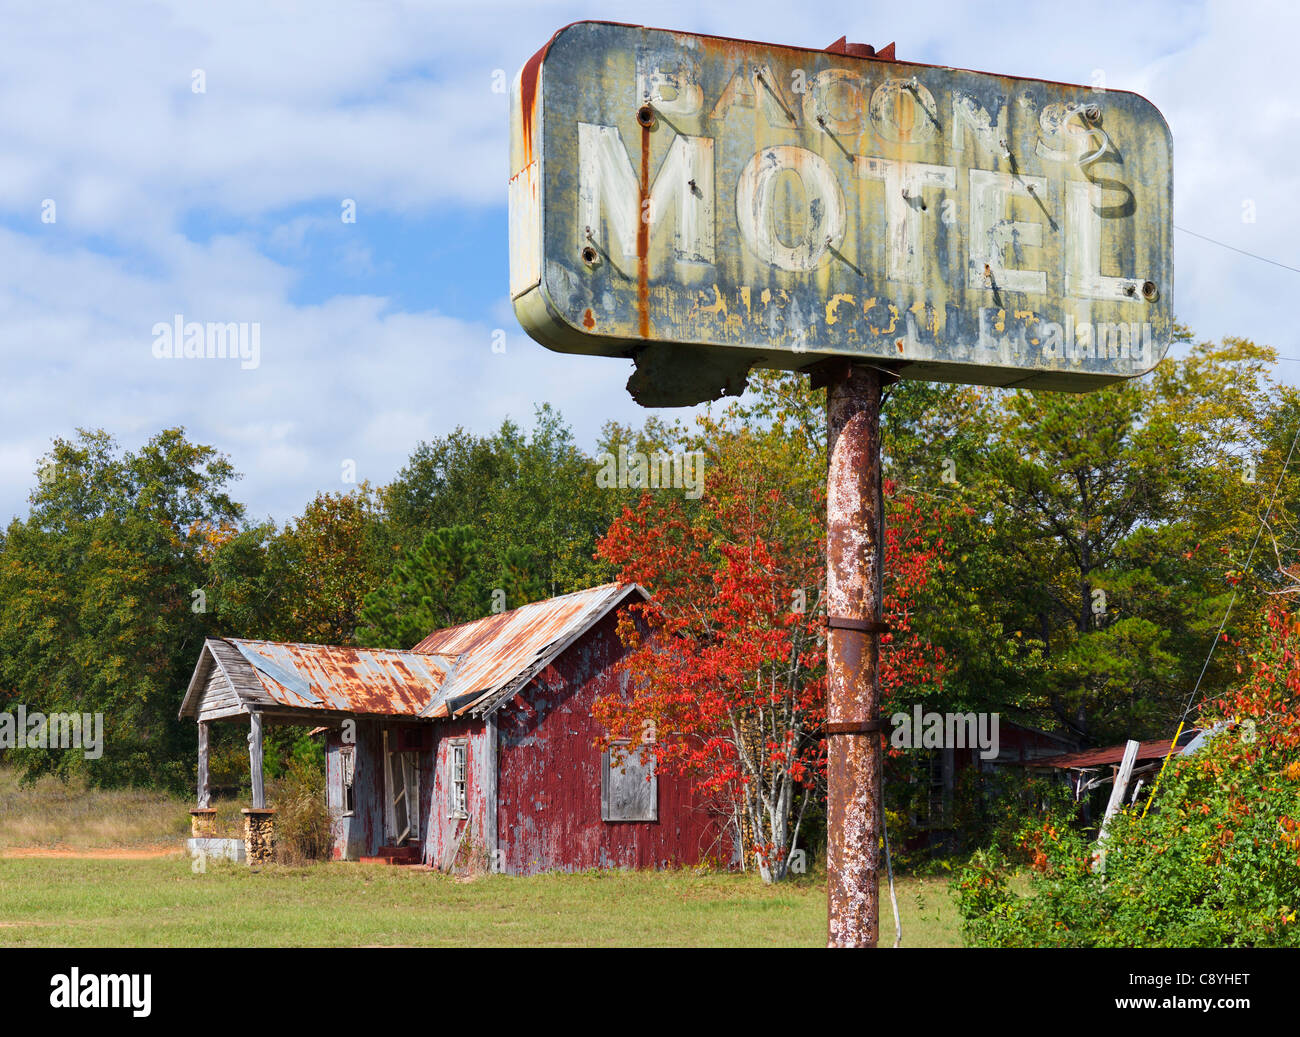 Dilapidated ruins of a small motel on Highway 280/27 outside Plains, Georgia, USA - Stock Image